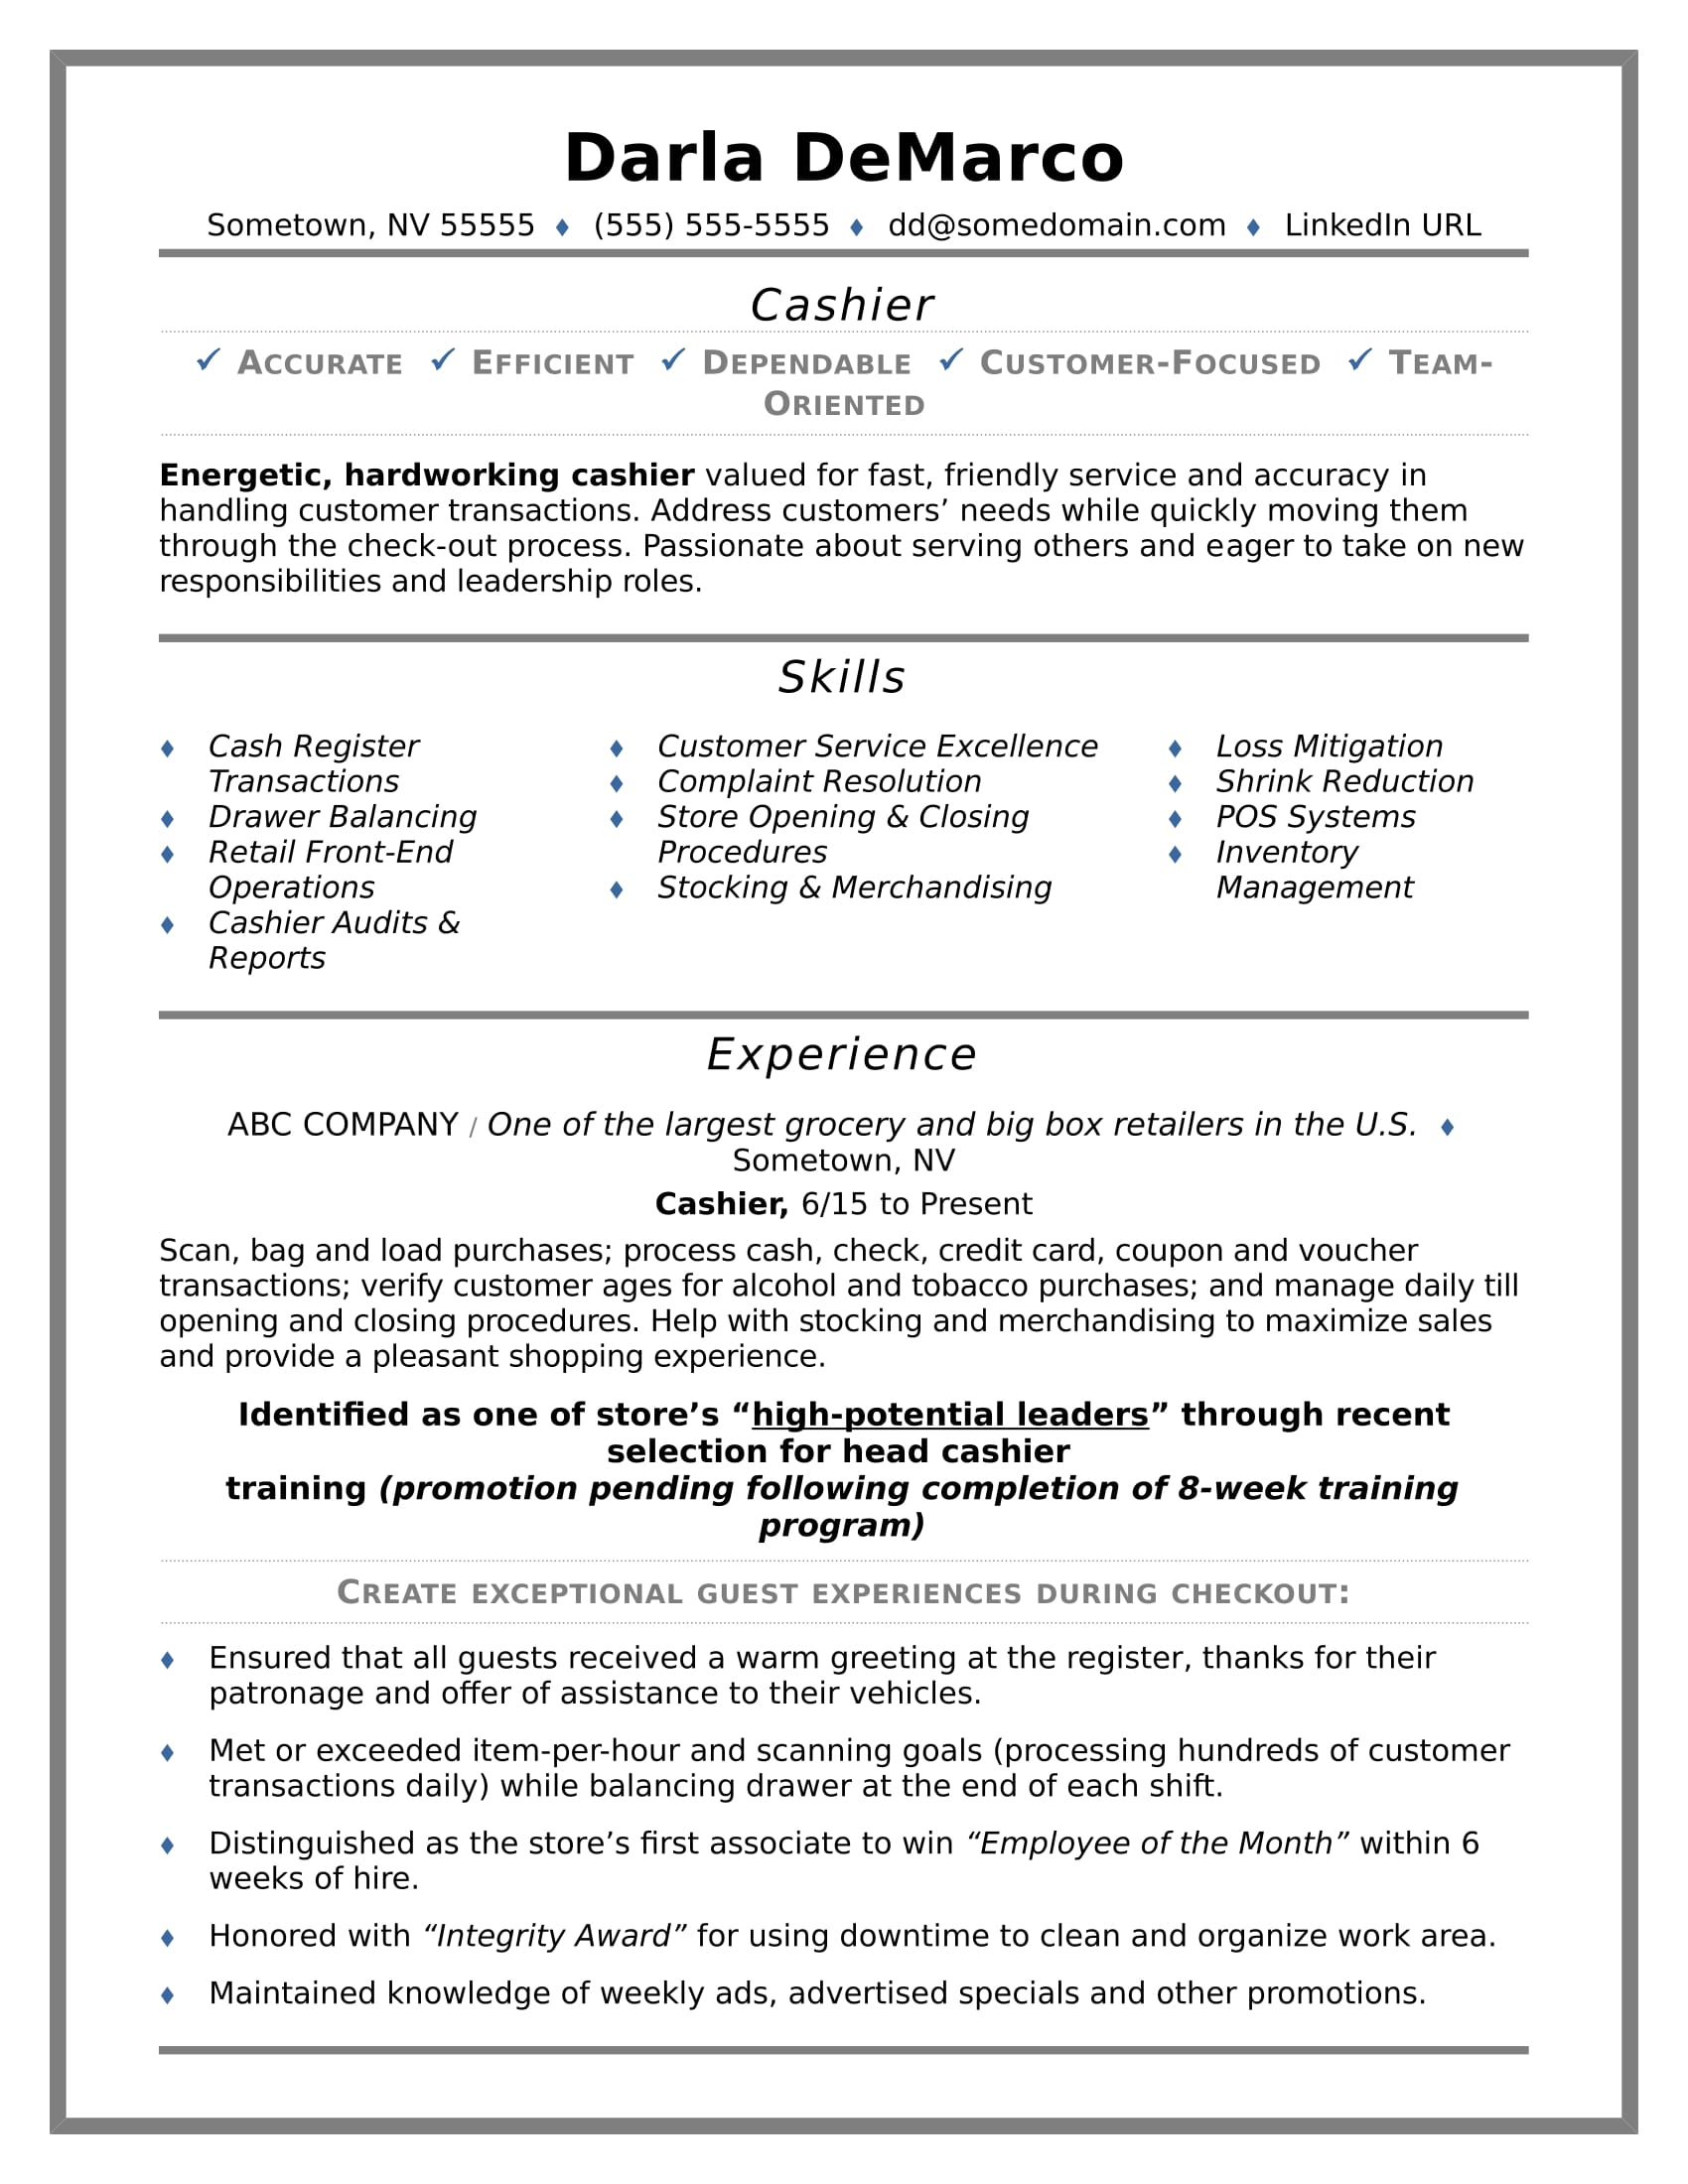 cashier resume sample - Sample Resume For A Cashier